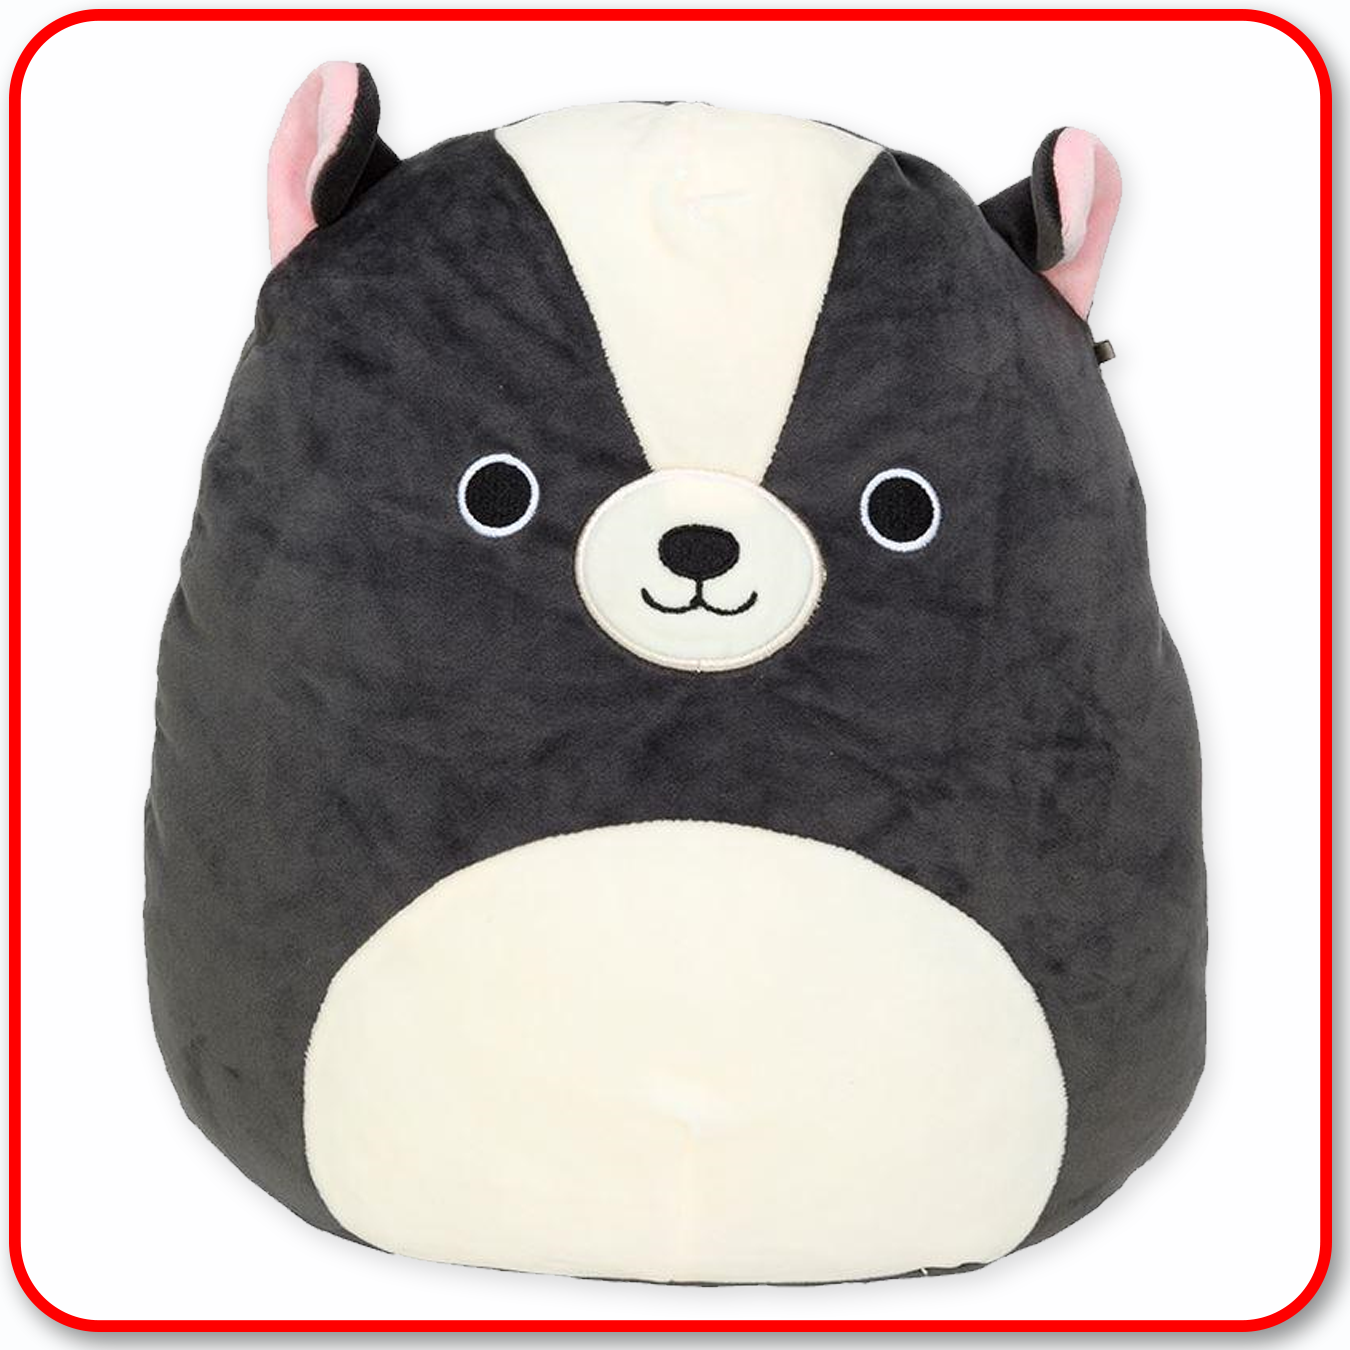 "Squishmallows - 12"" Skyler the Skunk"